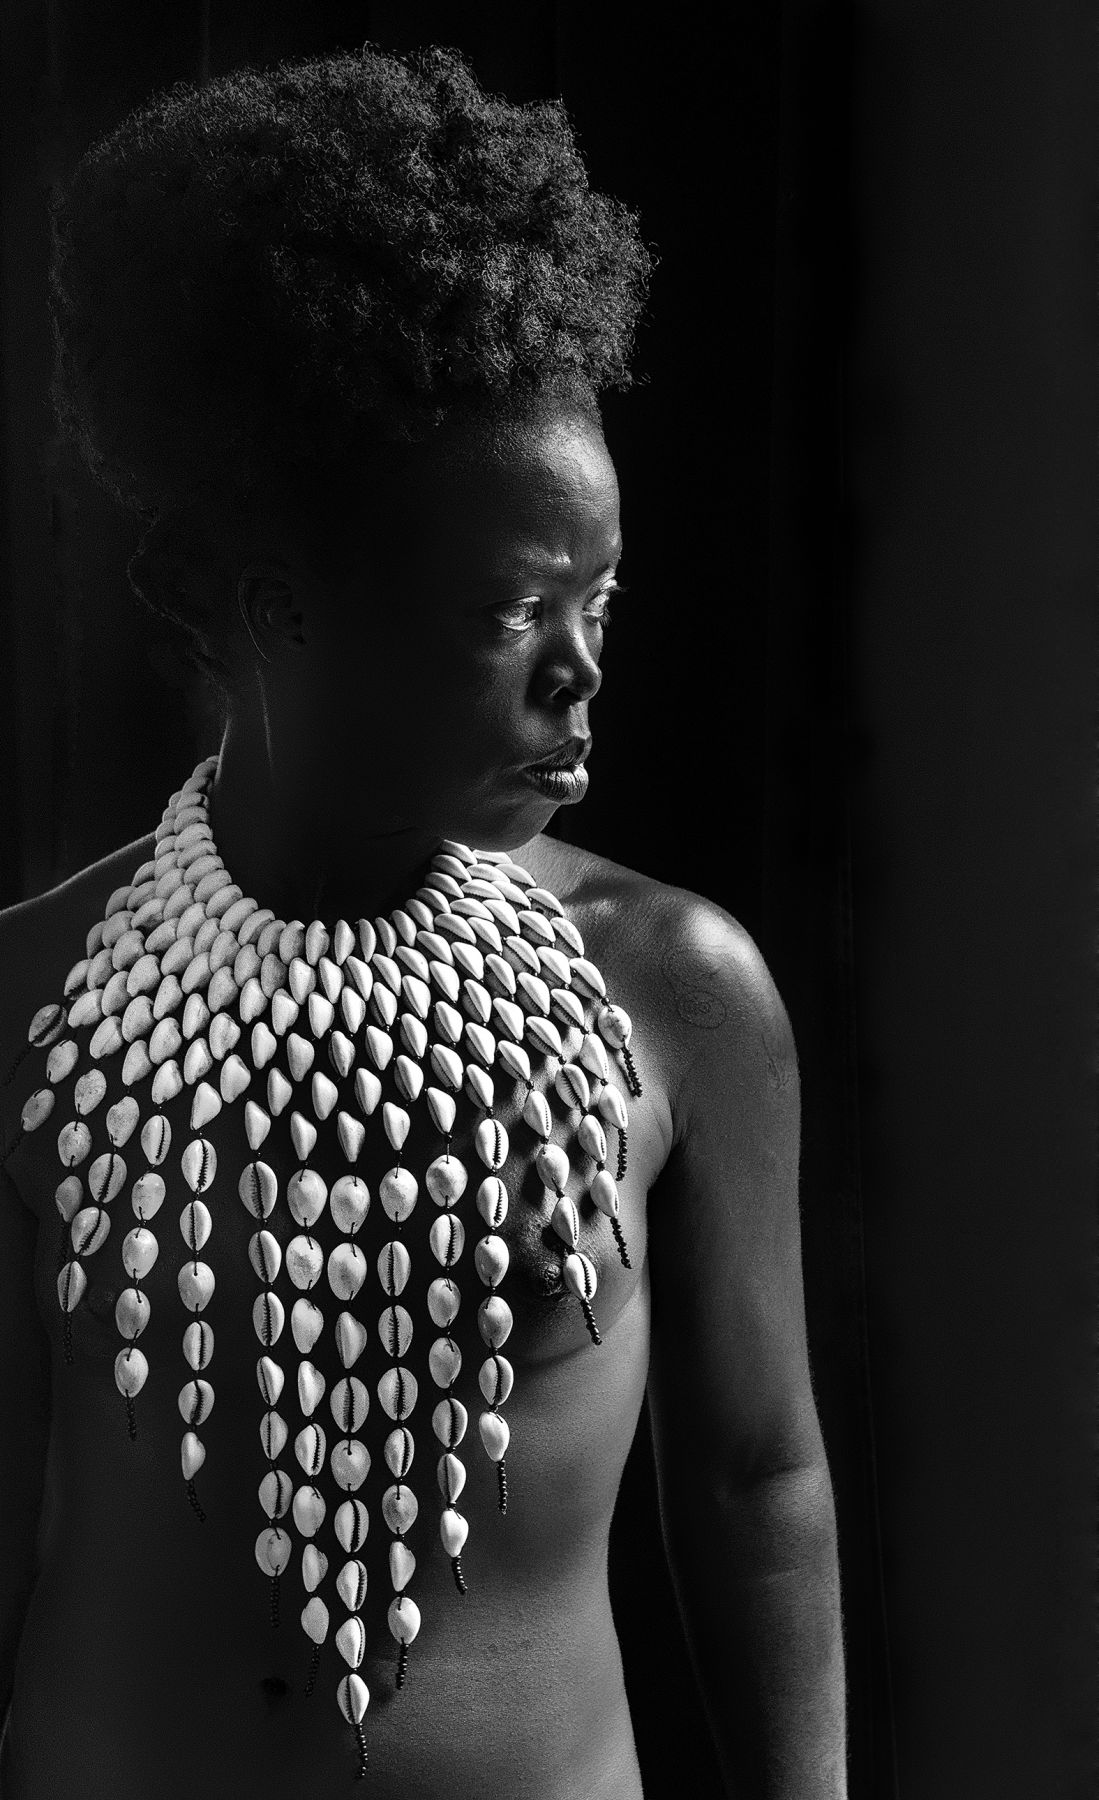 Zodwa, Paris, 2014. Gelatin Silver Print. 35.5 x 23.12 inches. Edition of 8.